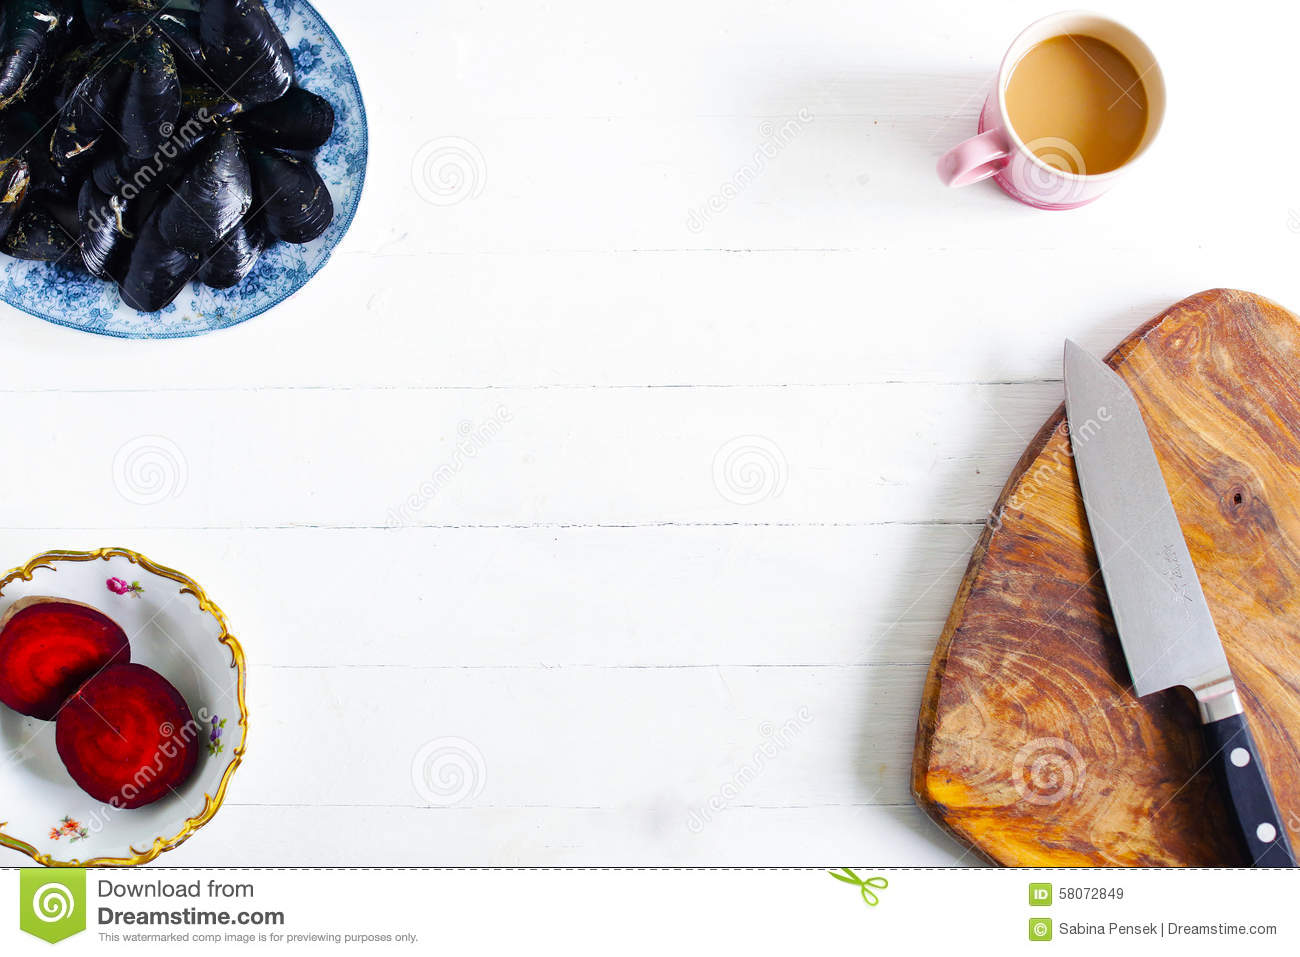 kitchen food preparation table lantern lights over island background mussels beet coffee